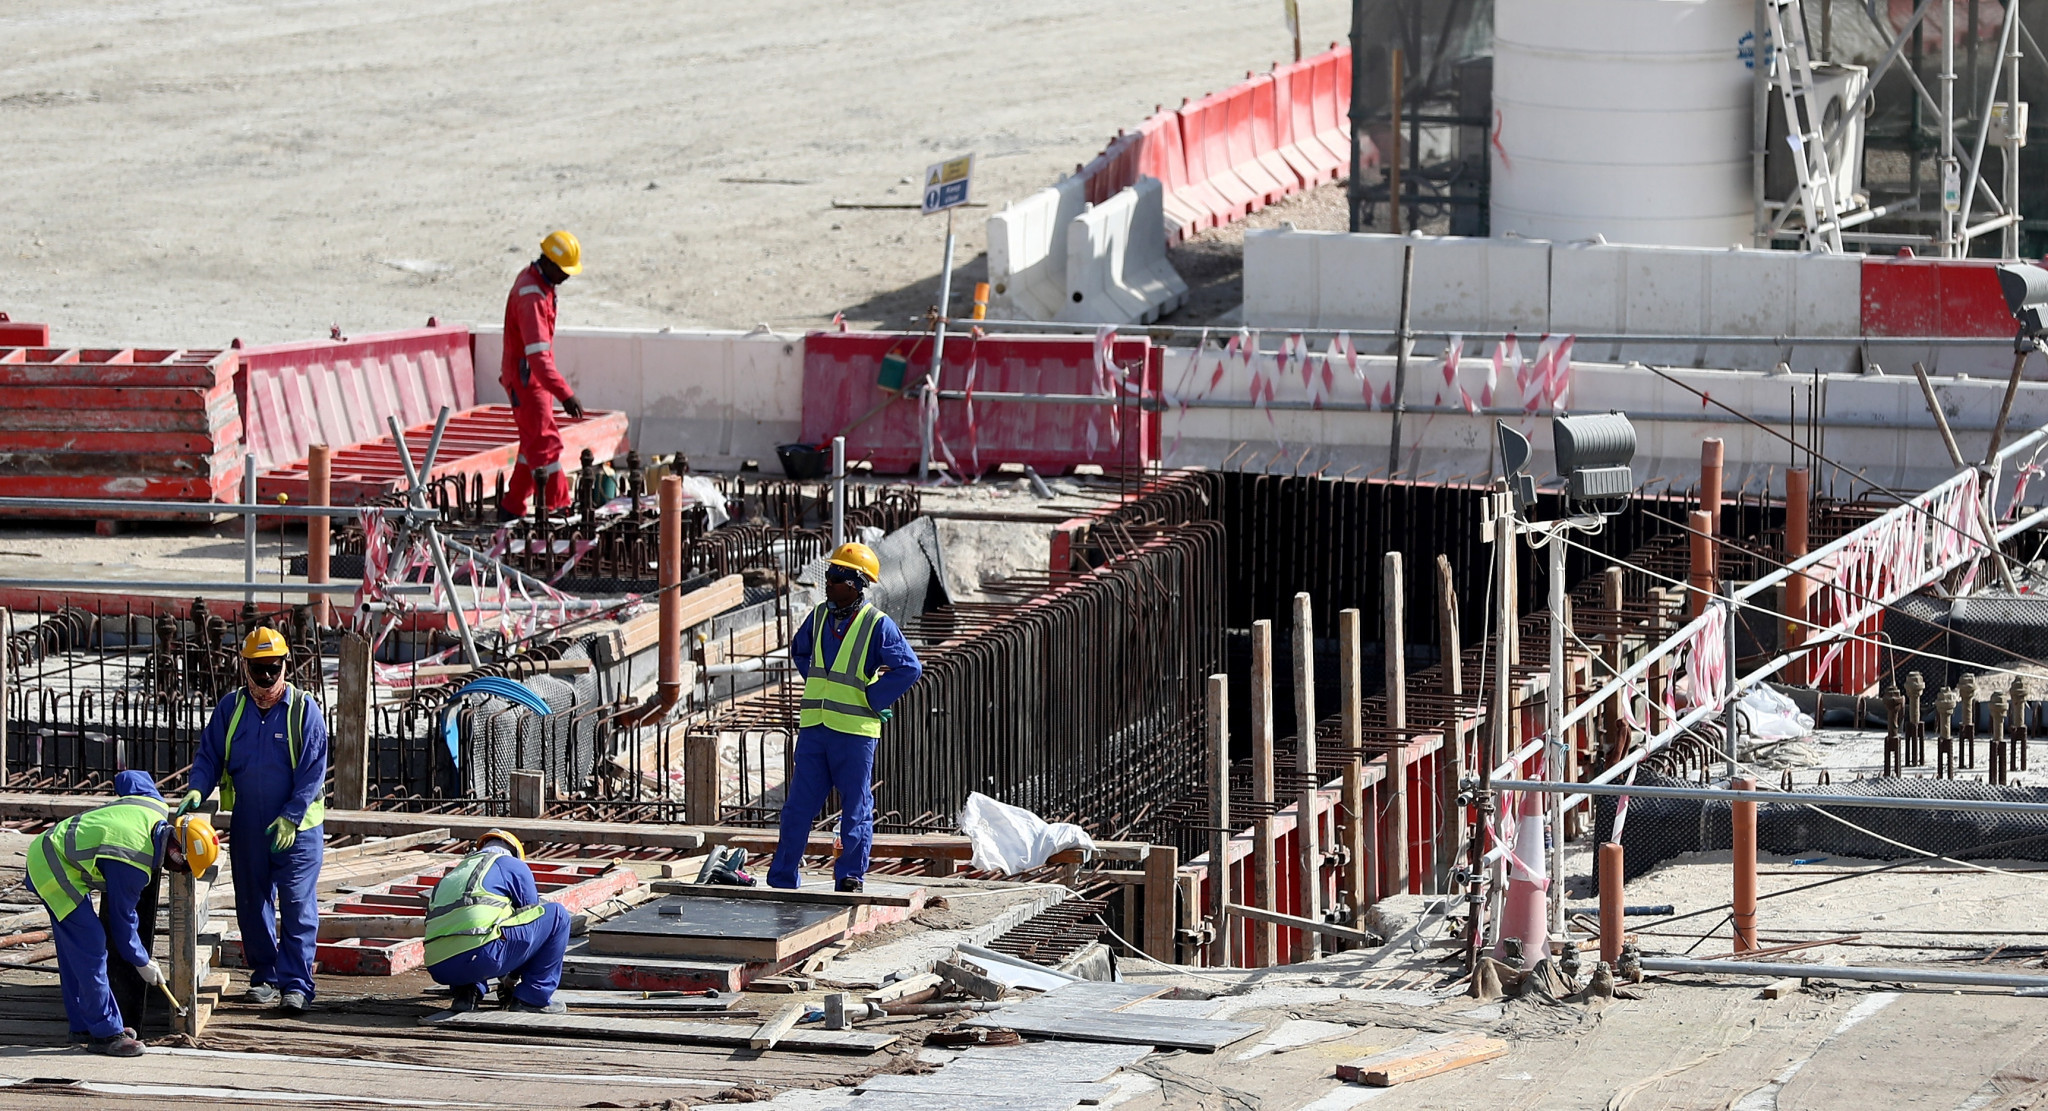 Human Rights Watch calls on FIFA to urge Qatar to enforce outdoor work restrictions